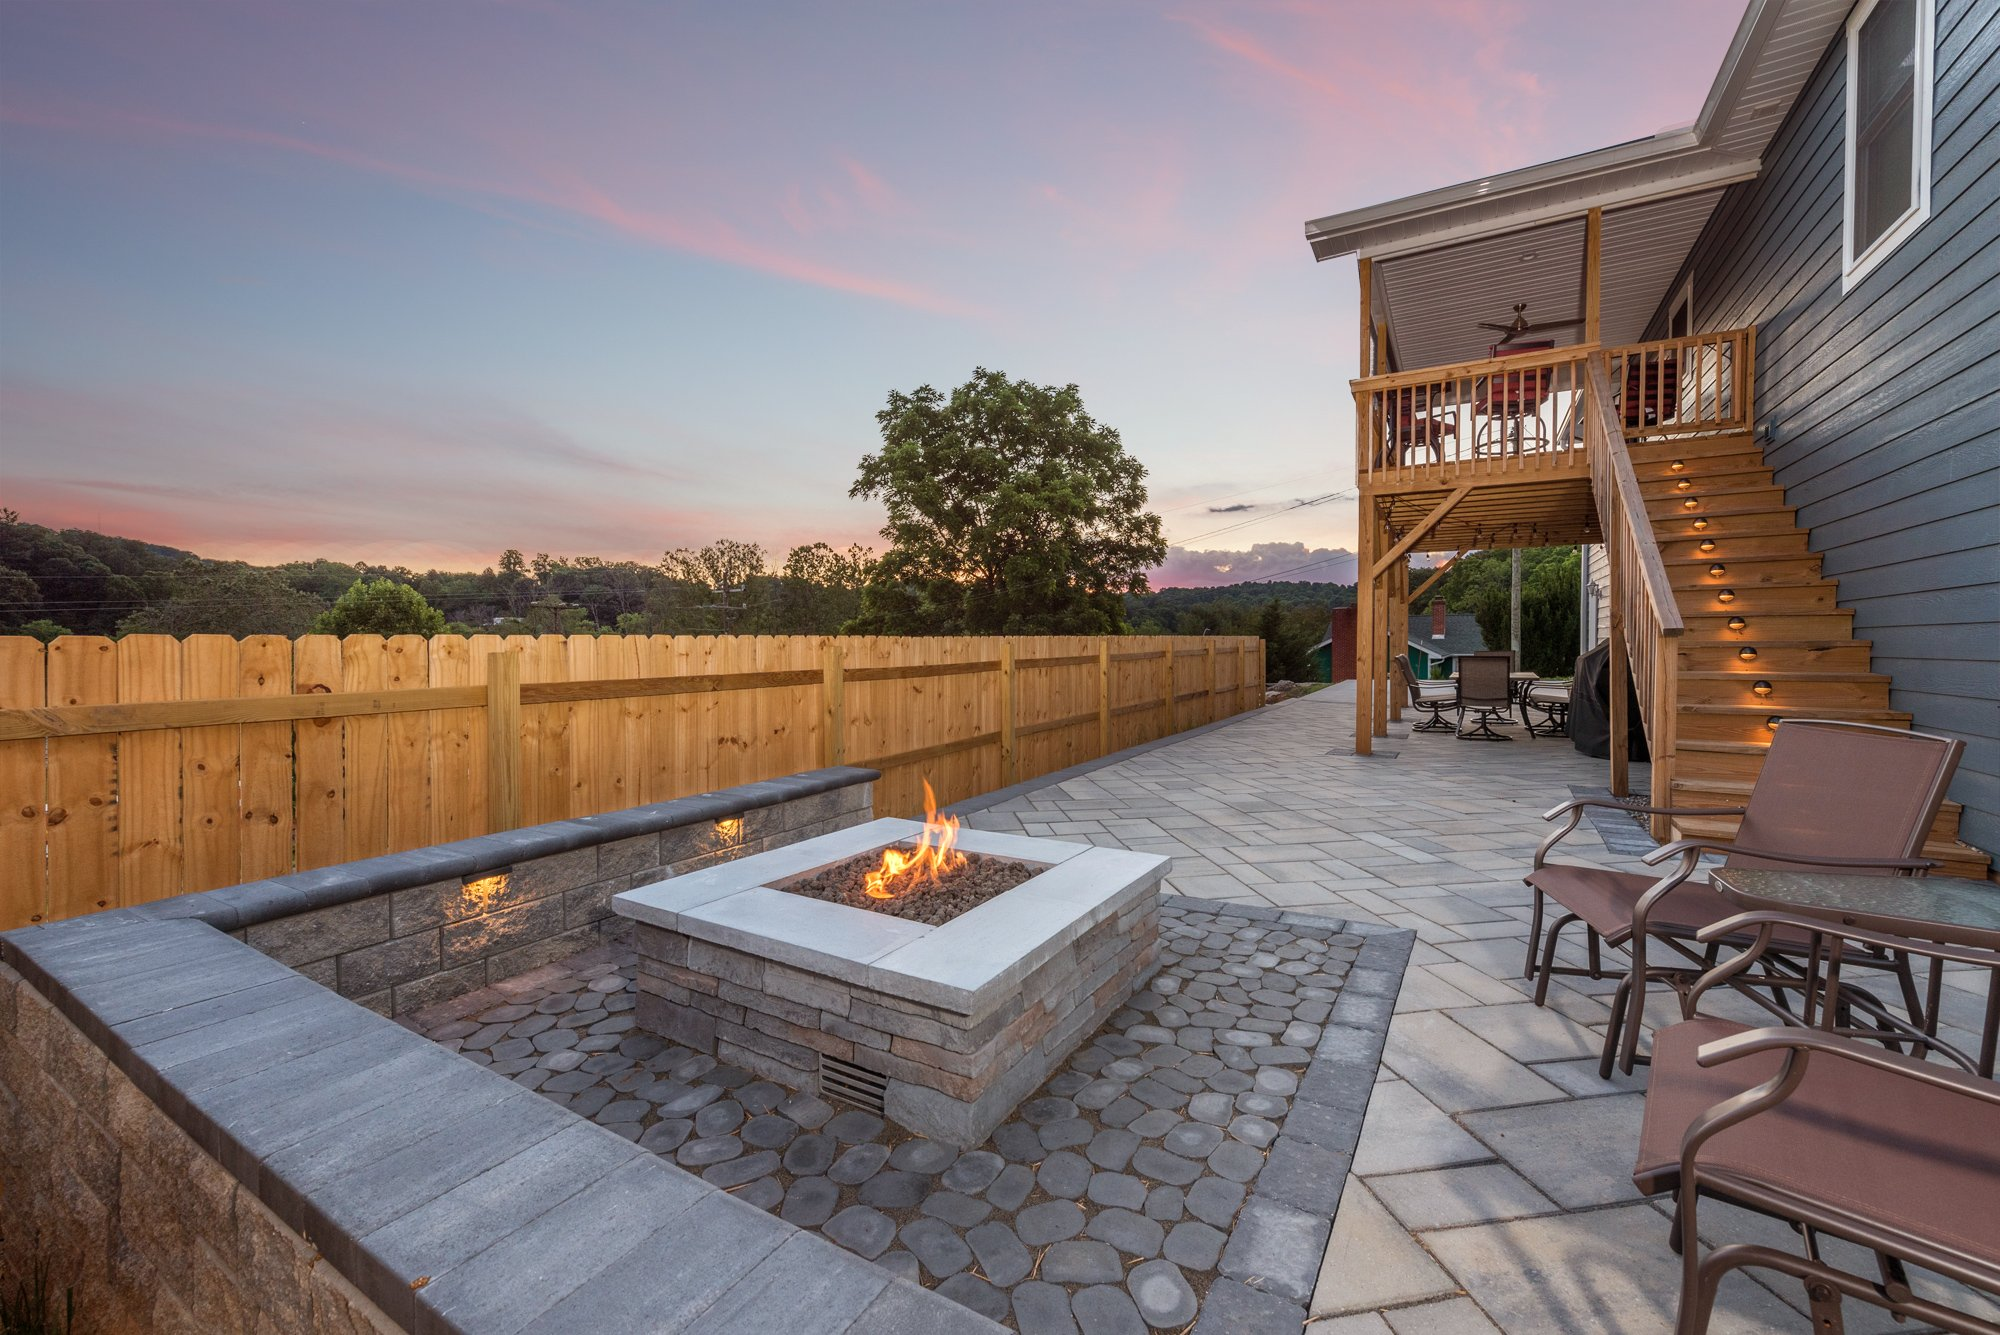 Premier paver patio installation including: new fence installation, thorough outdoor lighting, wrap-around outdoor seating, and more, in Asheville, NC